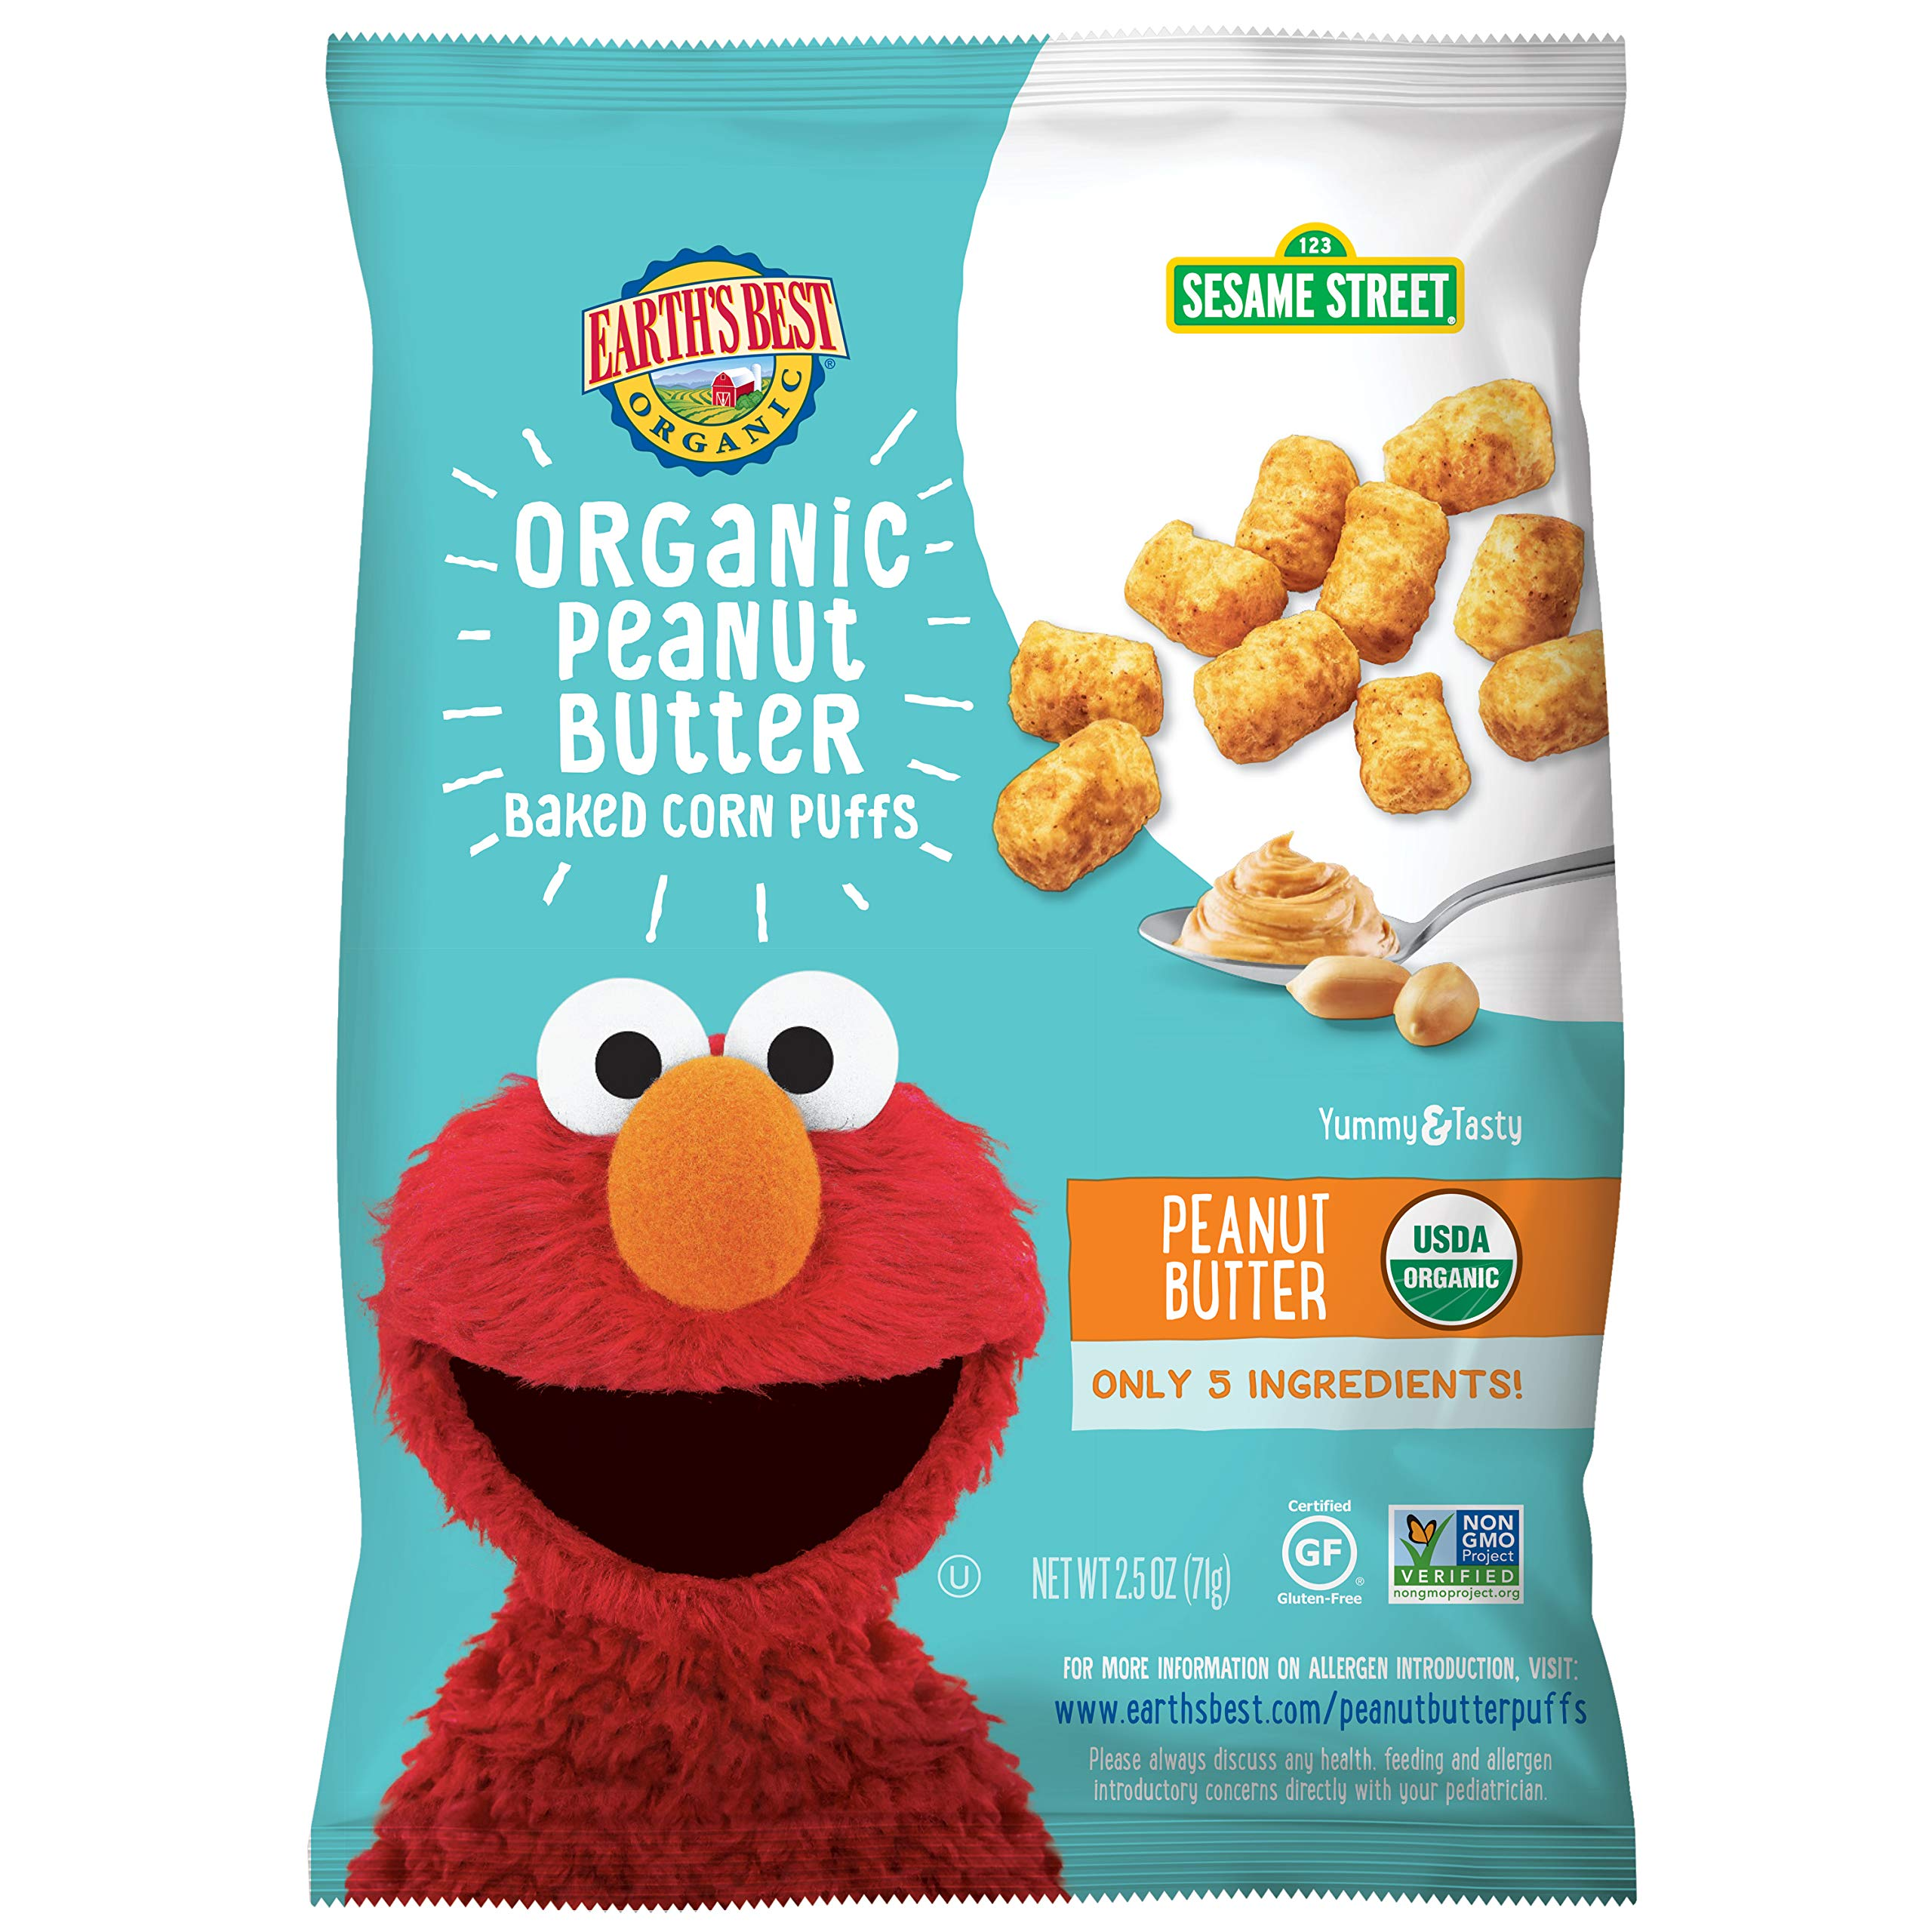 Earth's Best Organic Peanut Butter Baked Corn Puffs, 2.5 oz. (Pack of 6) by Earth's Best (Image #1)